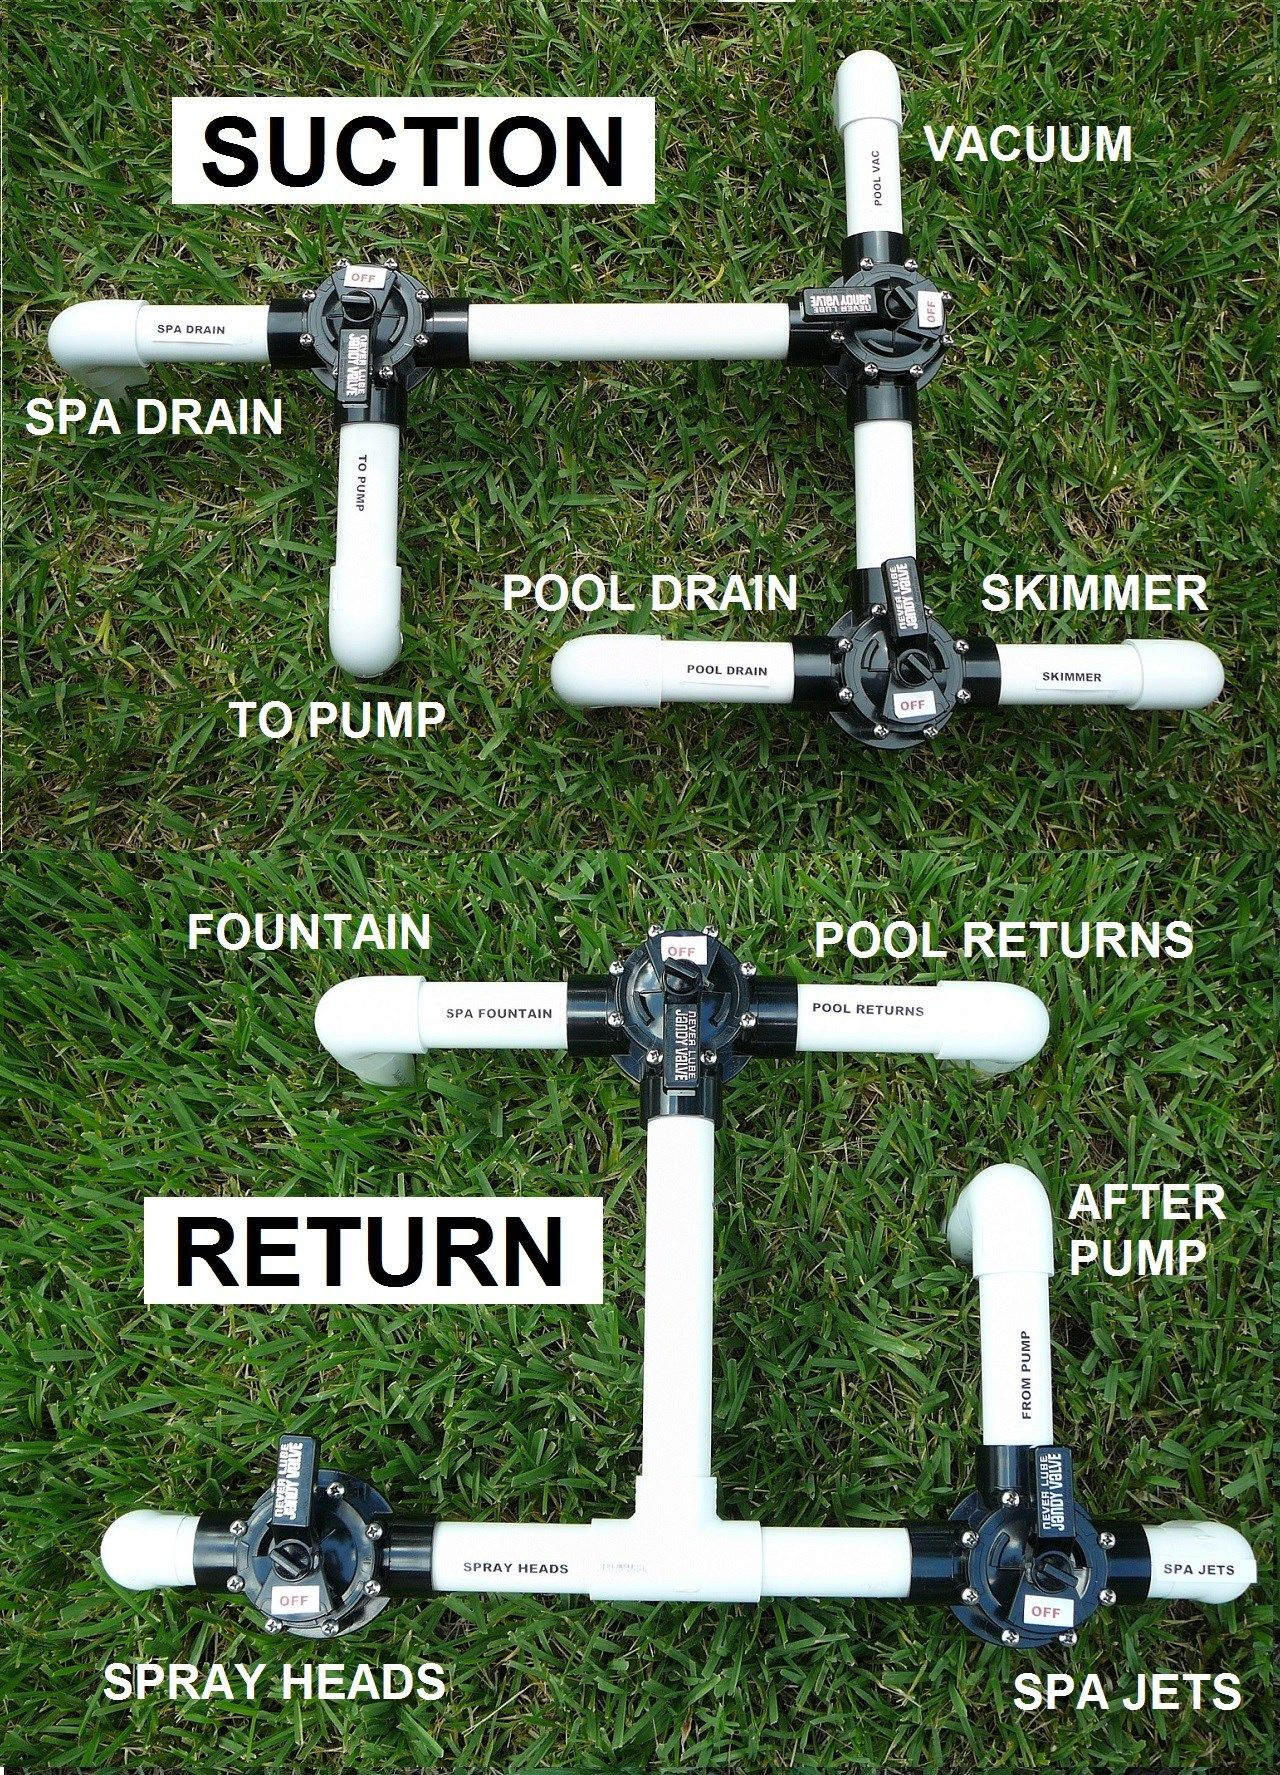 Jacuzzi Pool Pumps Plumbing Diagram For Pool Spa Jets In Pool Pump System